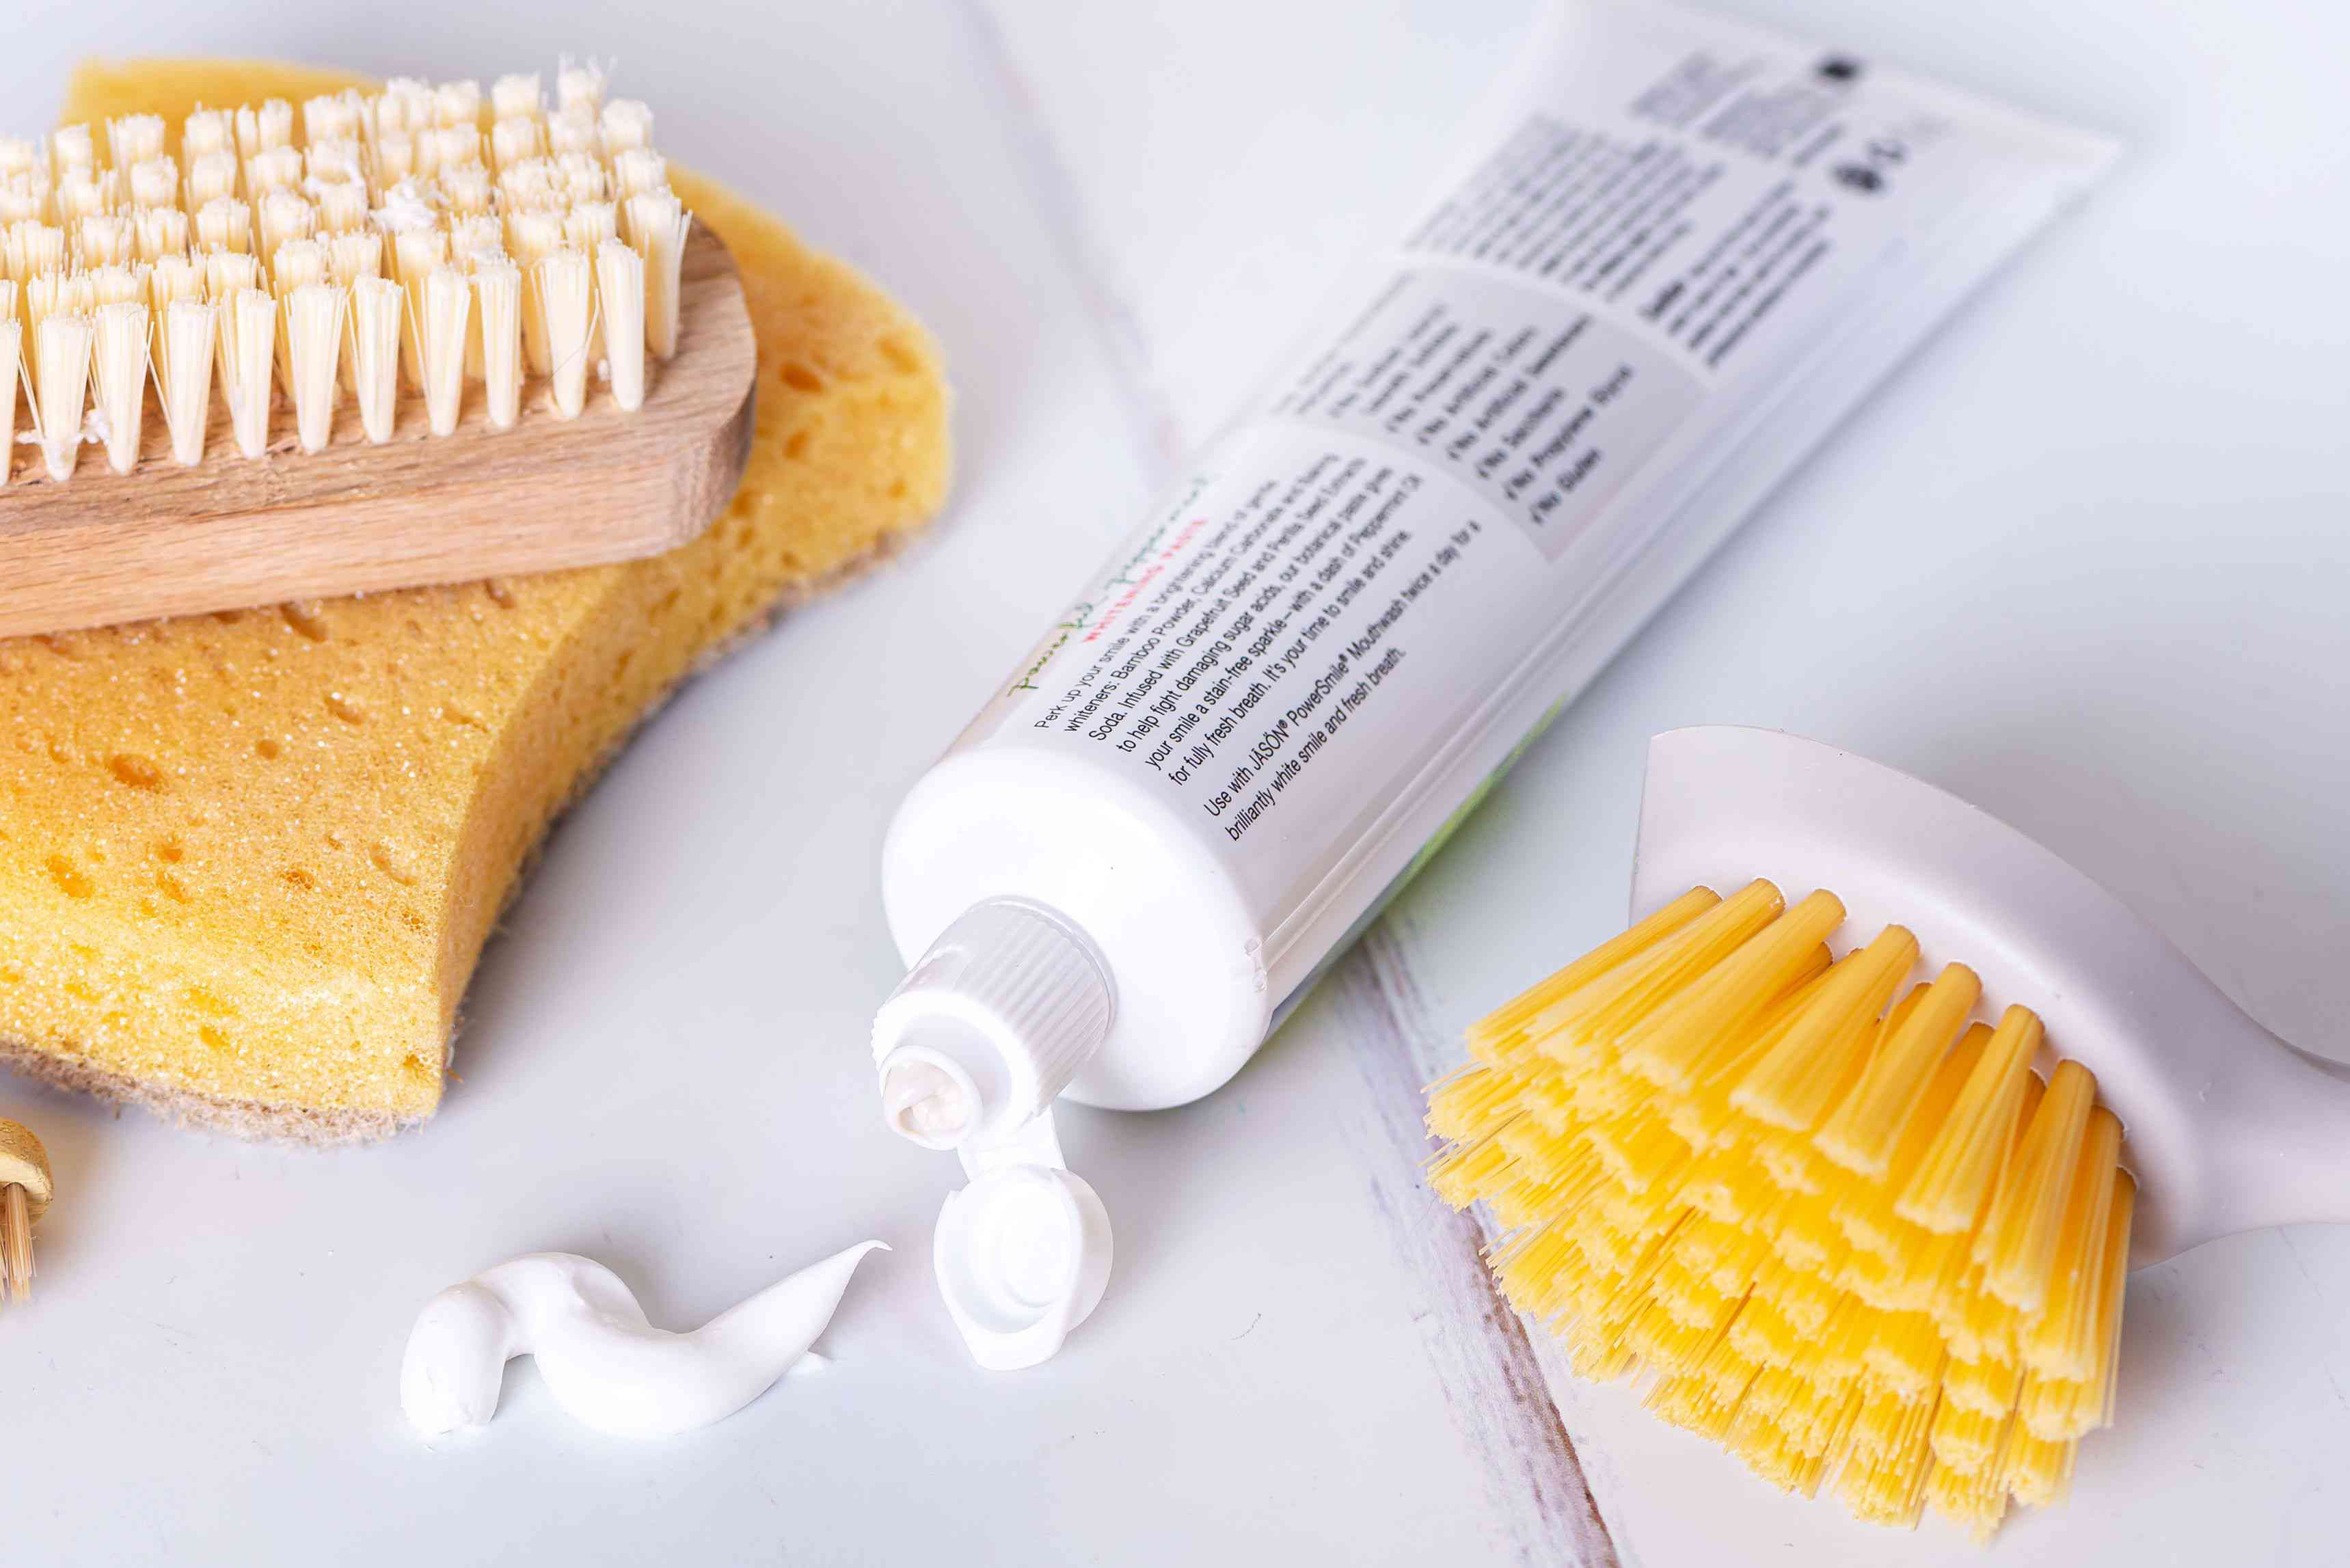 toothpaste and scrub brushes